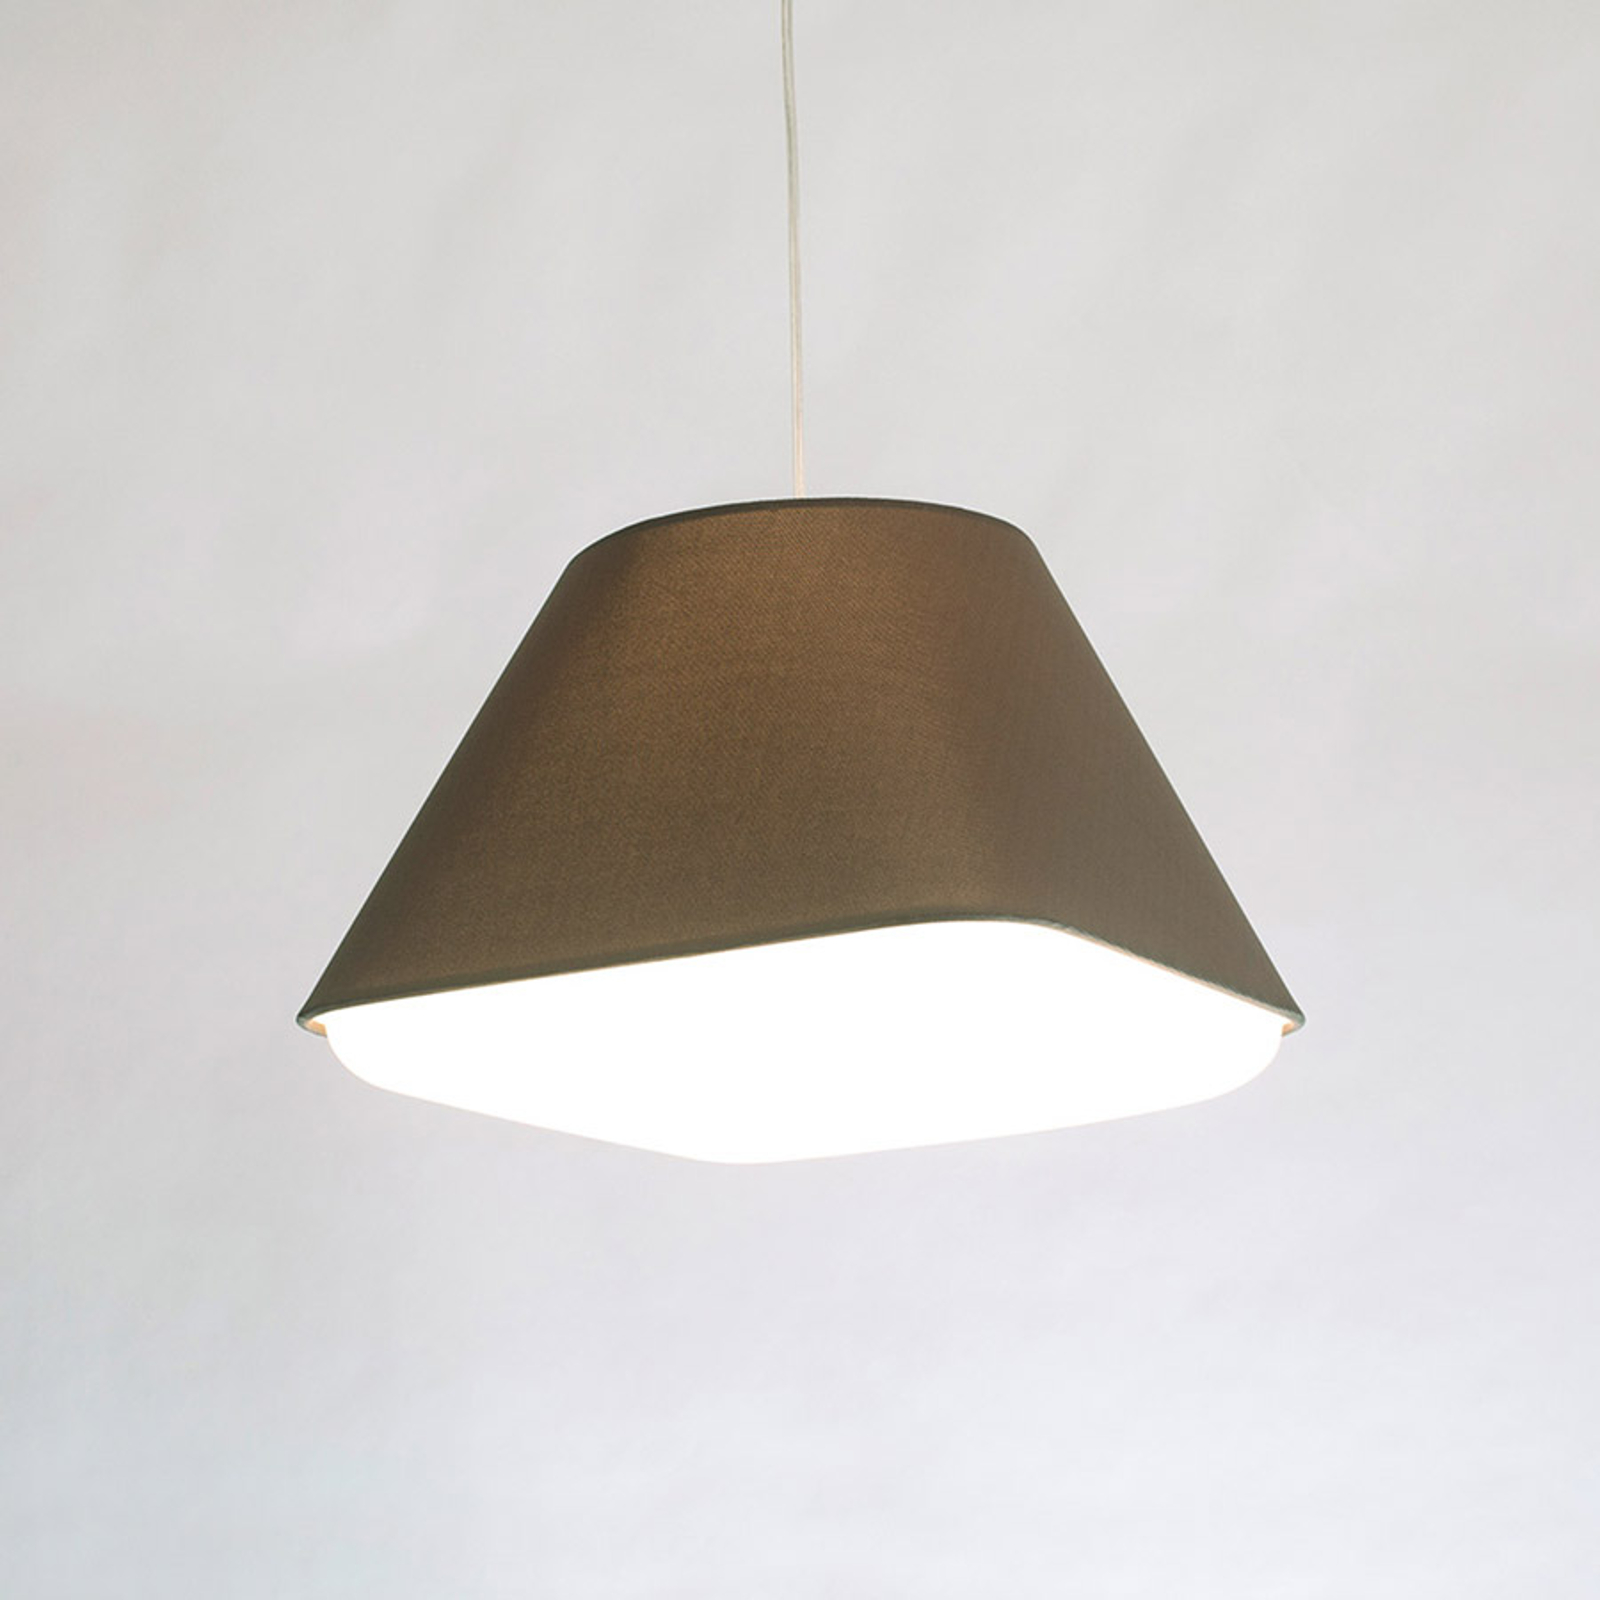 Innermost RD2SQ 40 - hanglamp in warm grijs